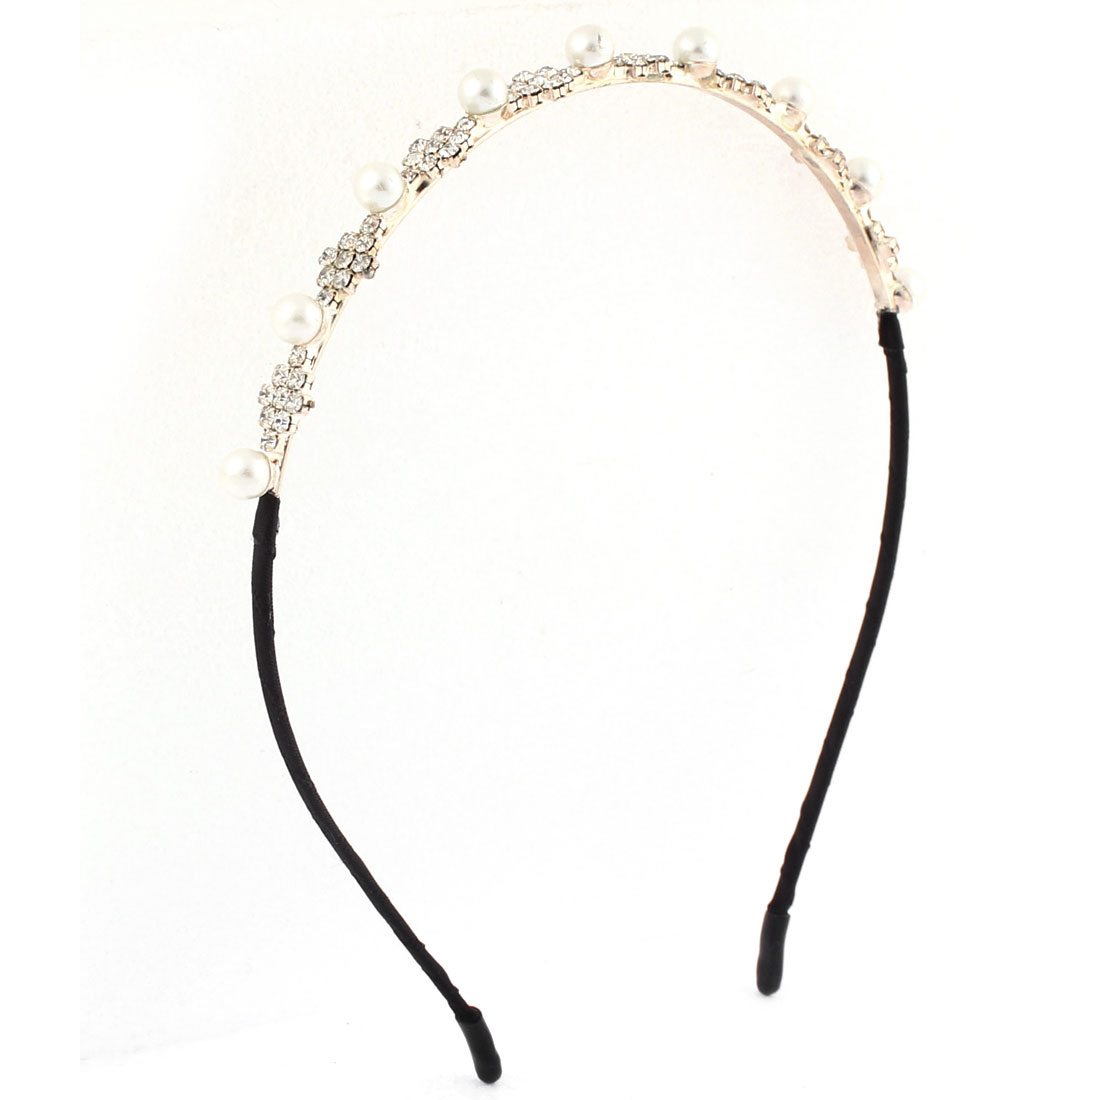 Lady Rhinestone Inlaid Plastic Imitation Pearl Decor Hair Hoop Bangs Hairband Headband